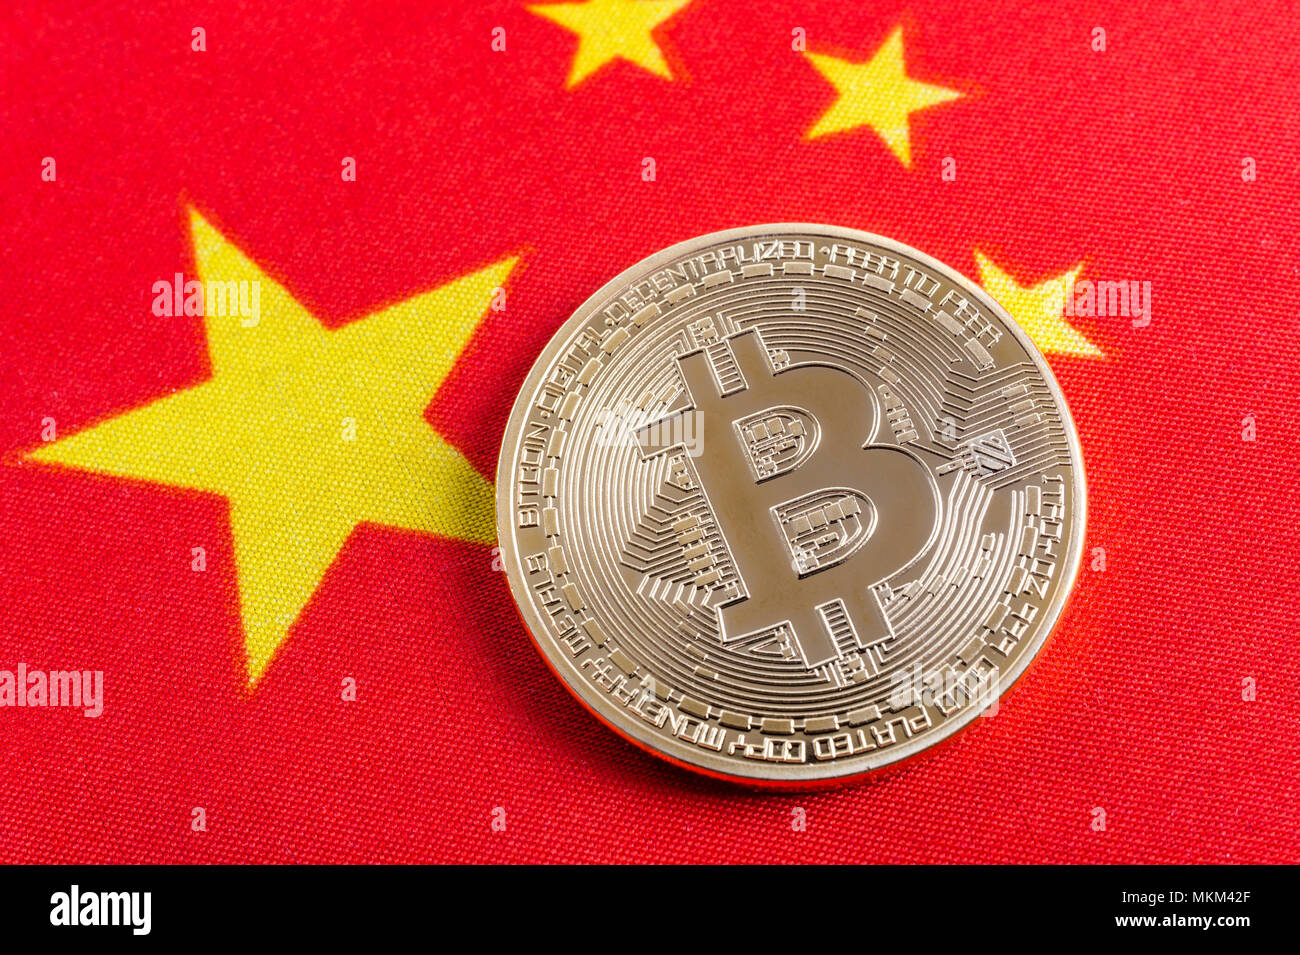 Bitcoin real coin over chinese flag fabric - Stock Image